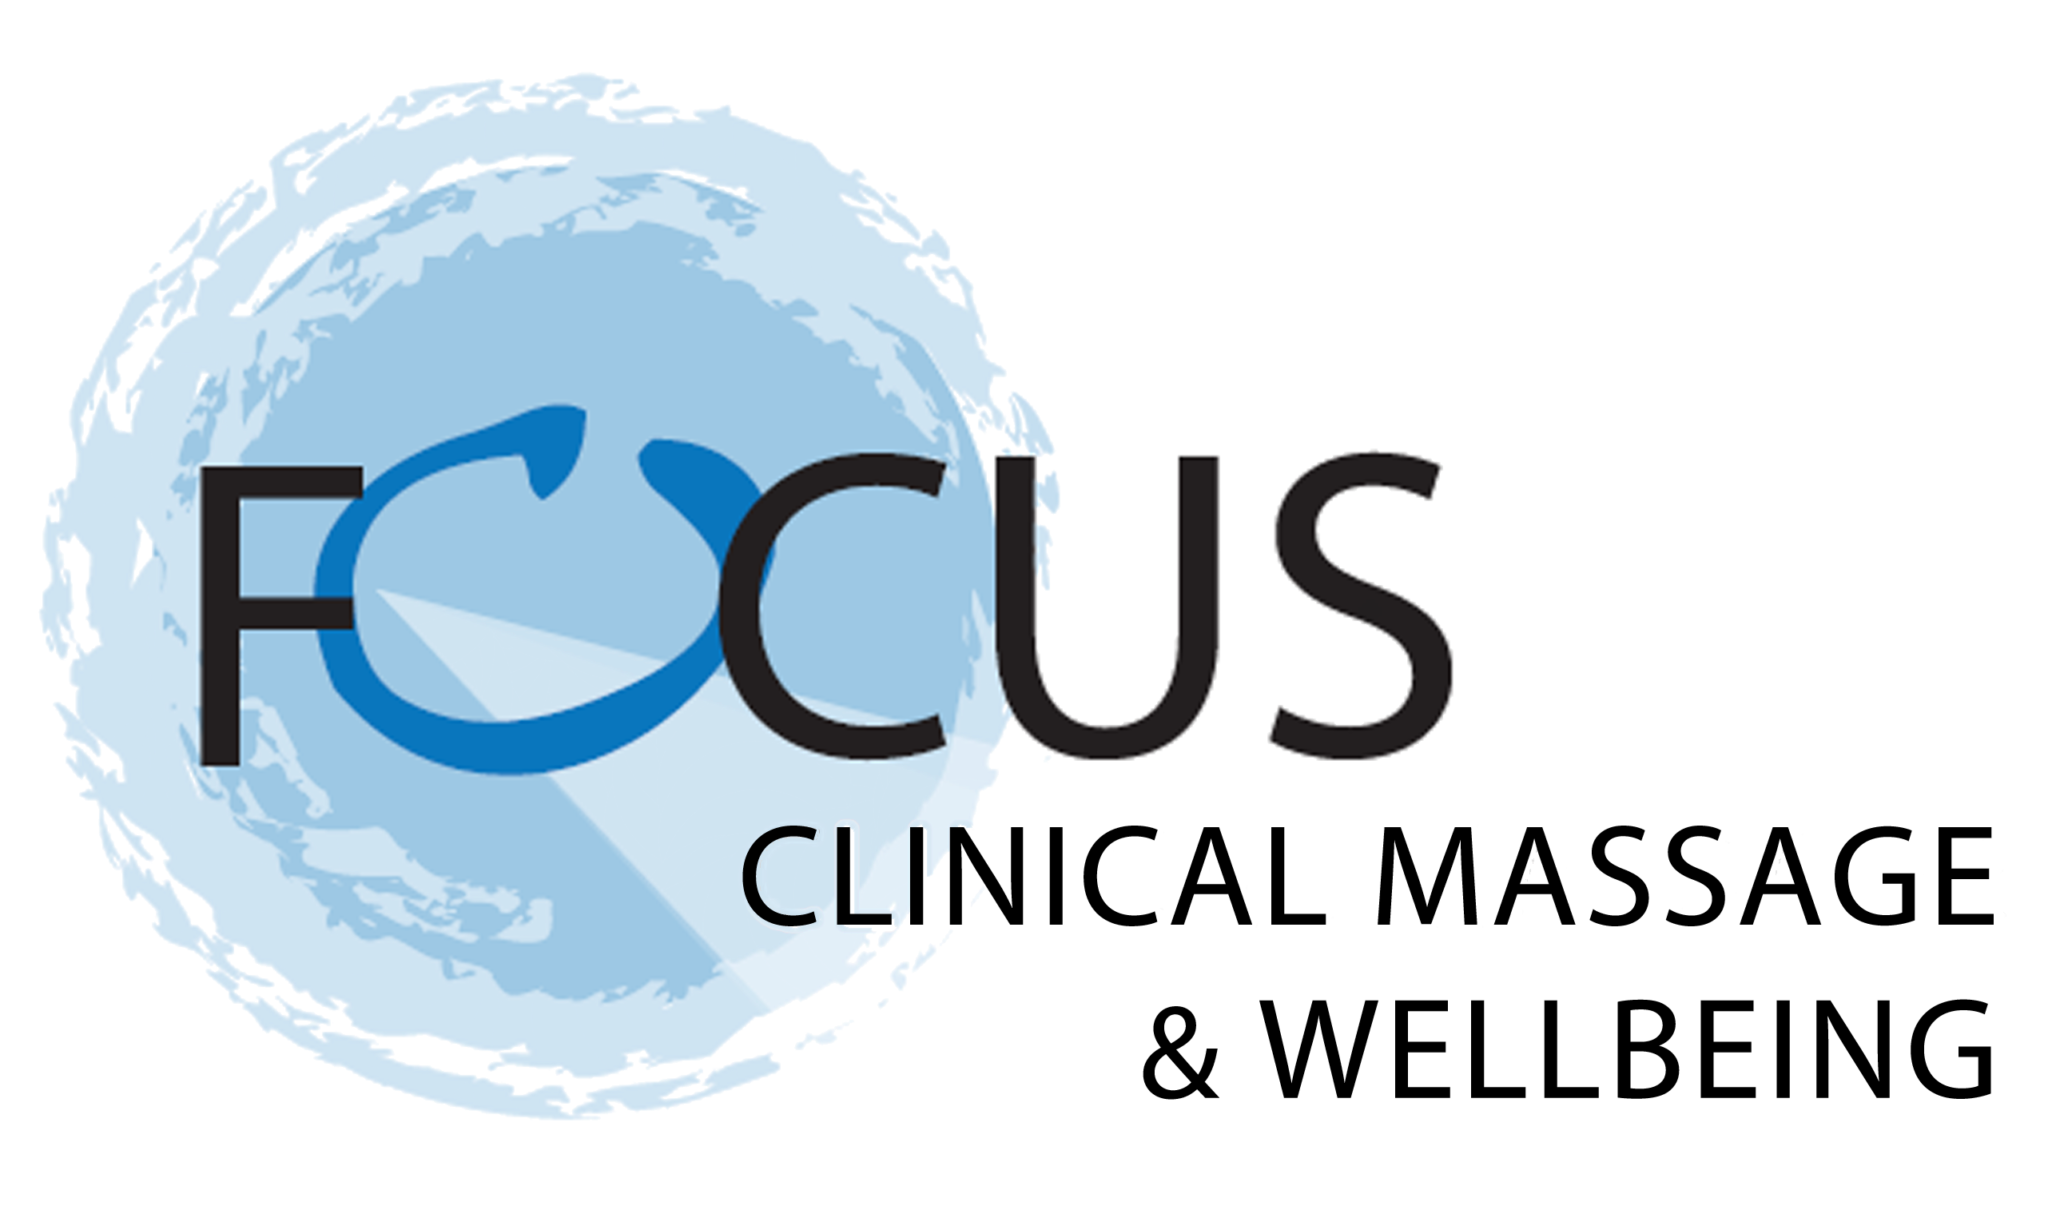 Focus Clinical Massage